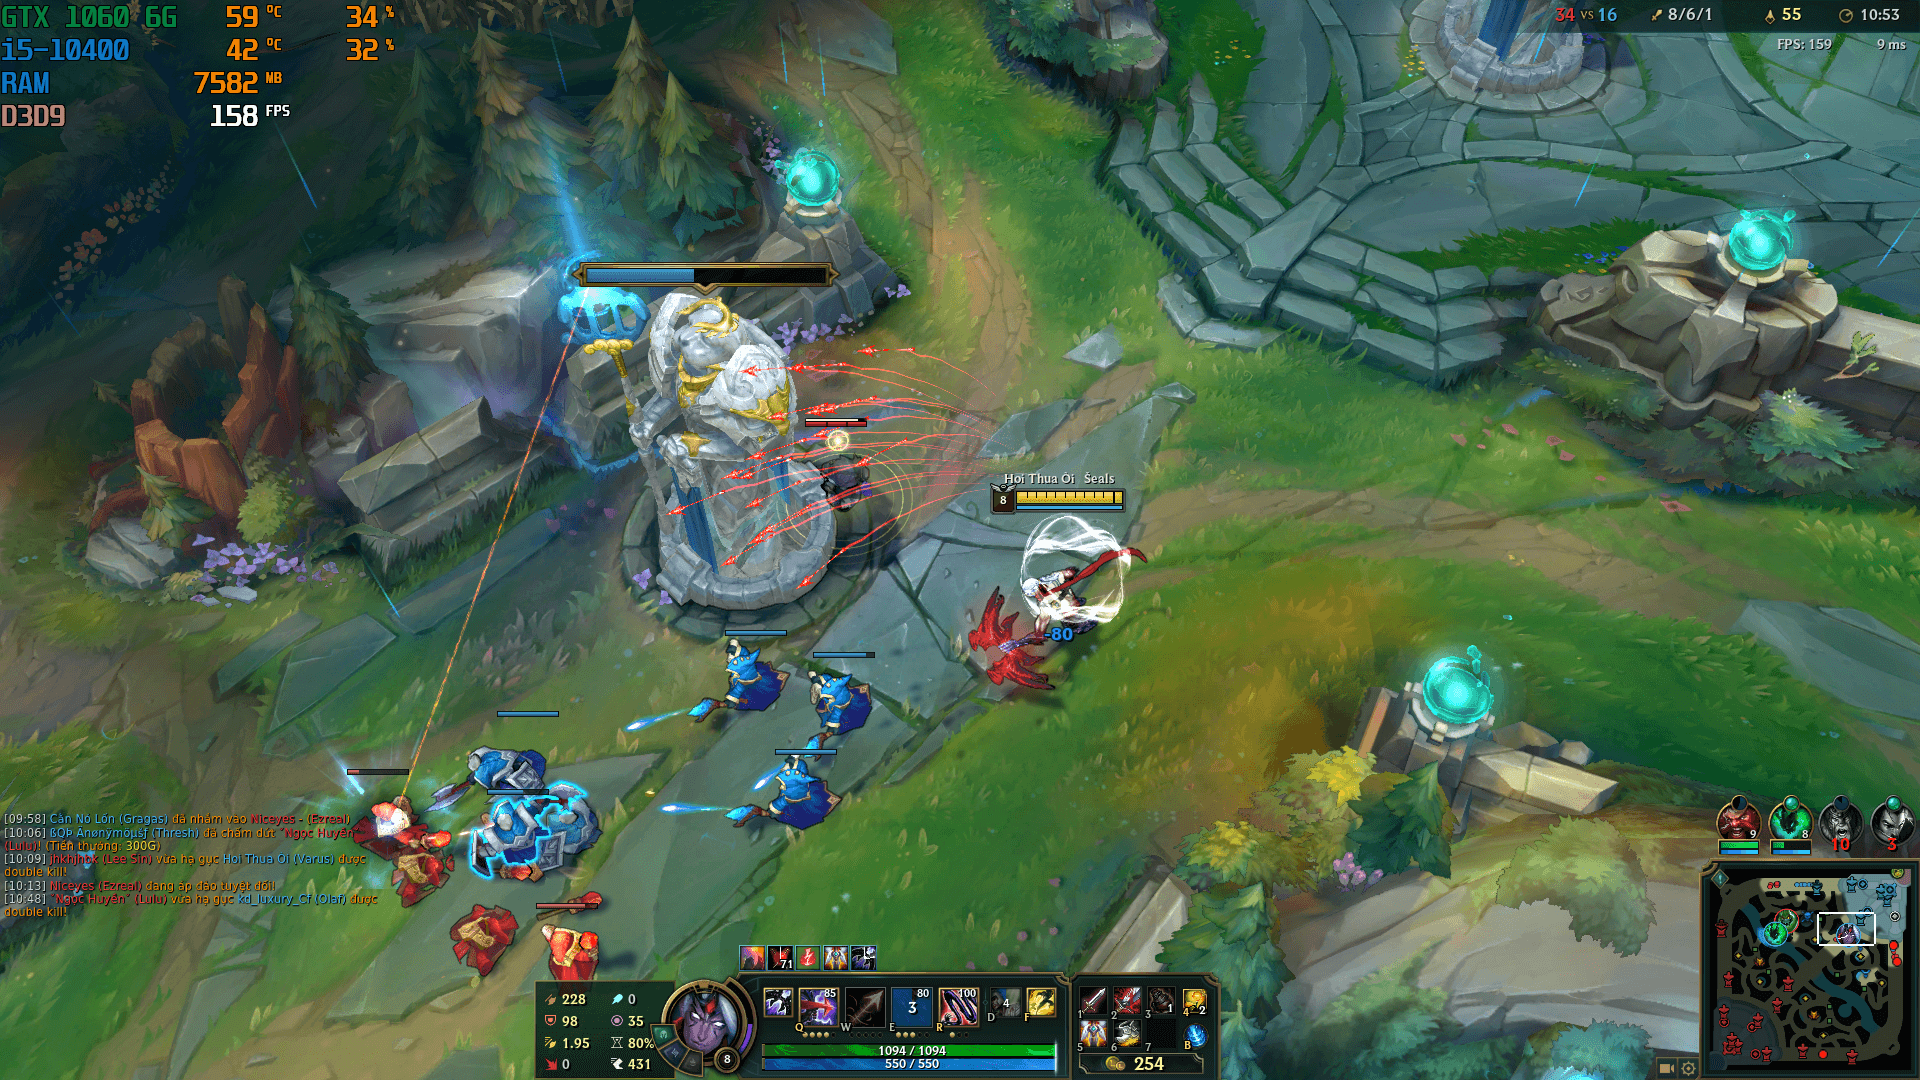 League Of Legends Screenshot 2020.05.31 10.01.14.57